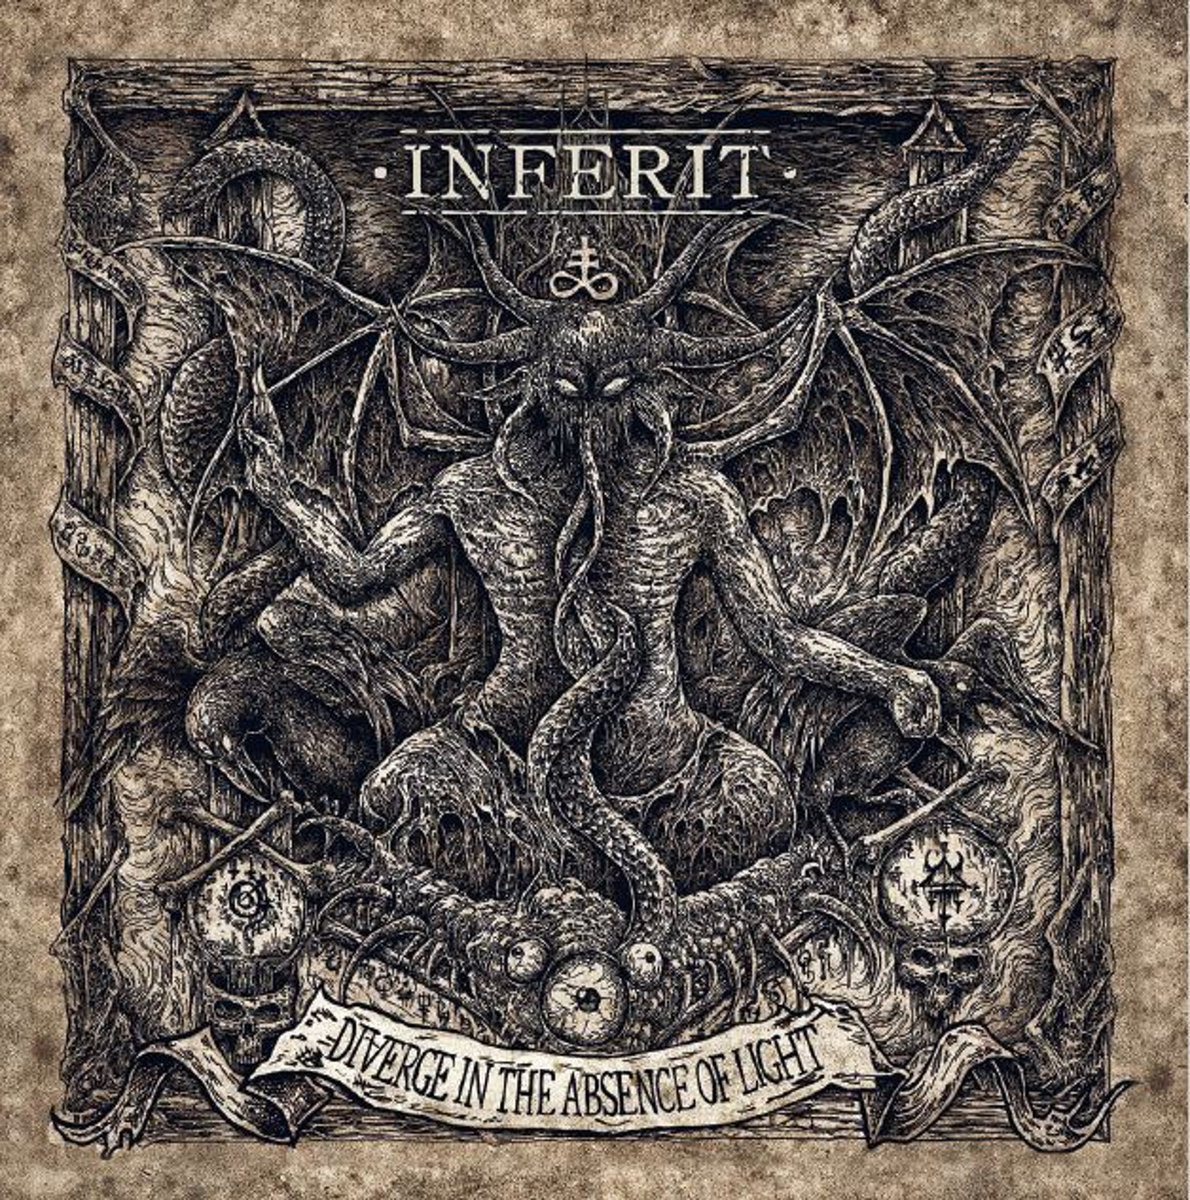 Inferit - Diverge in the Absence of Light (2020) [FLAC] Download